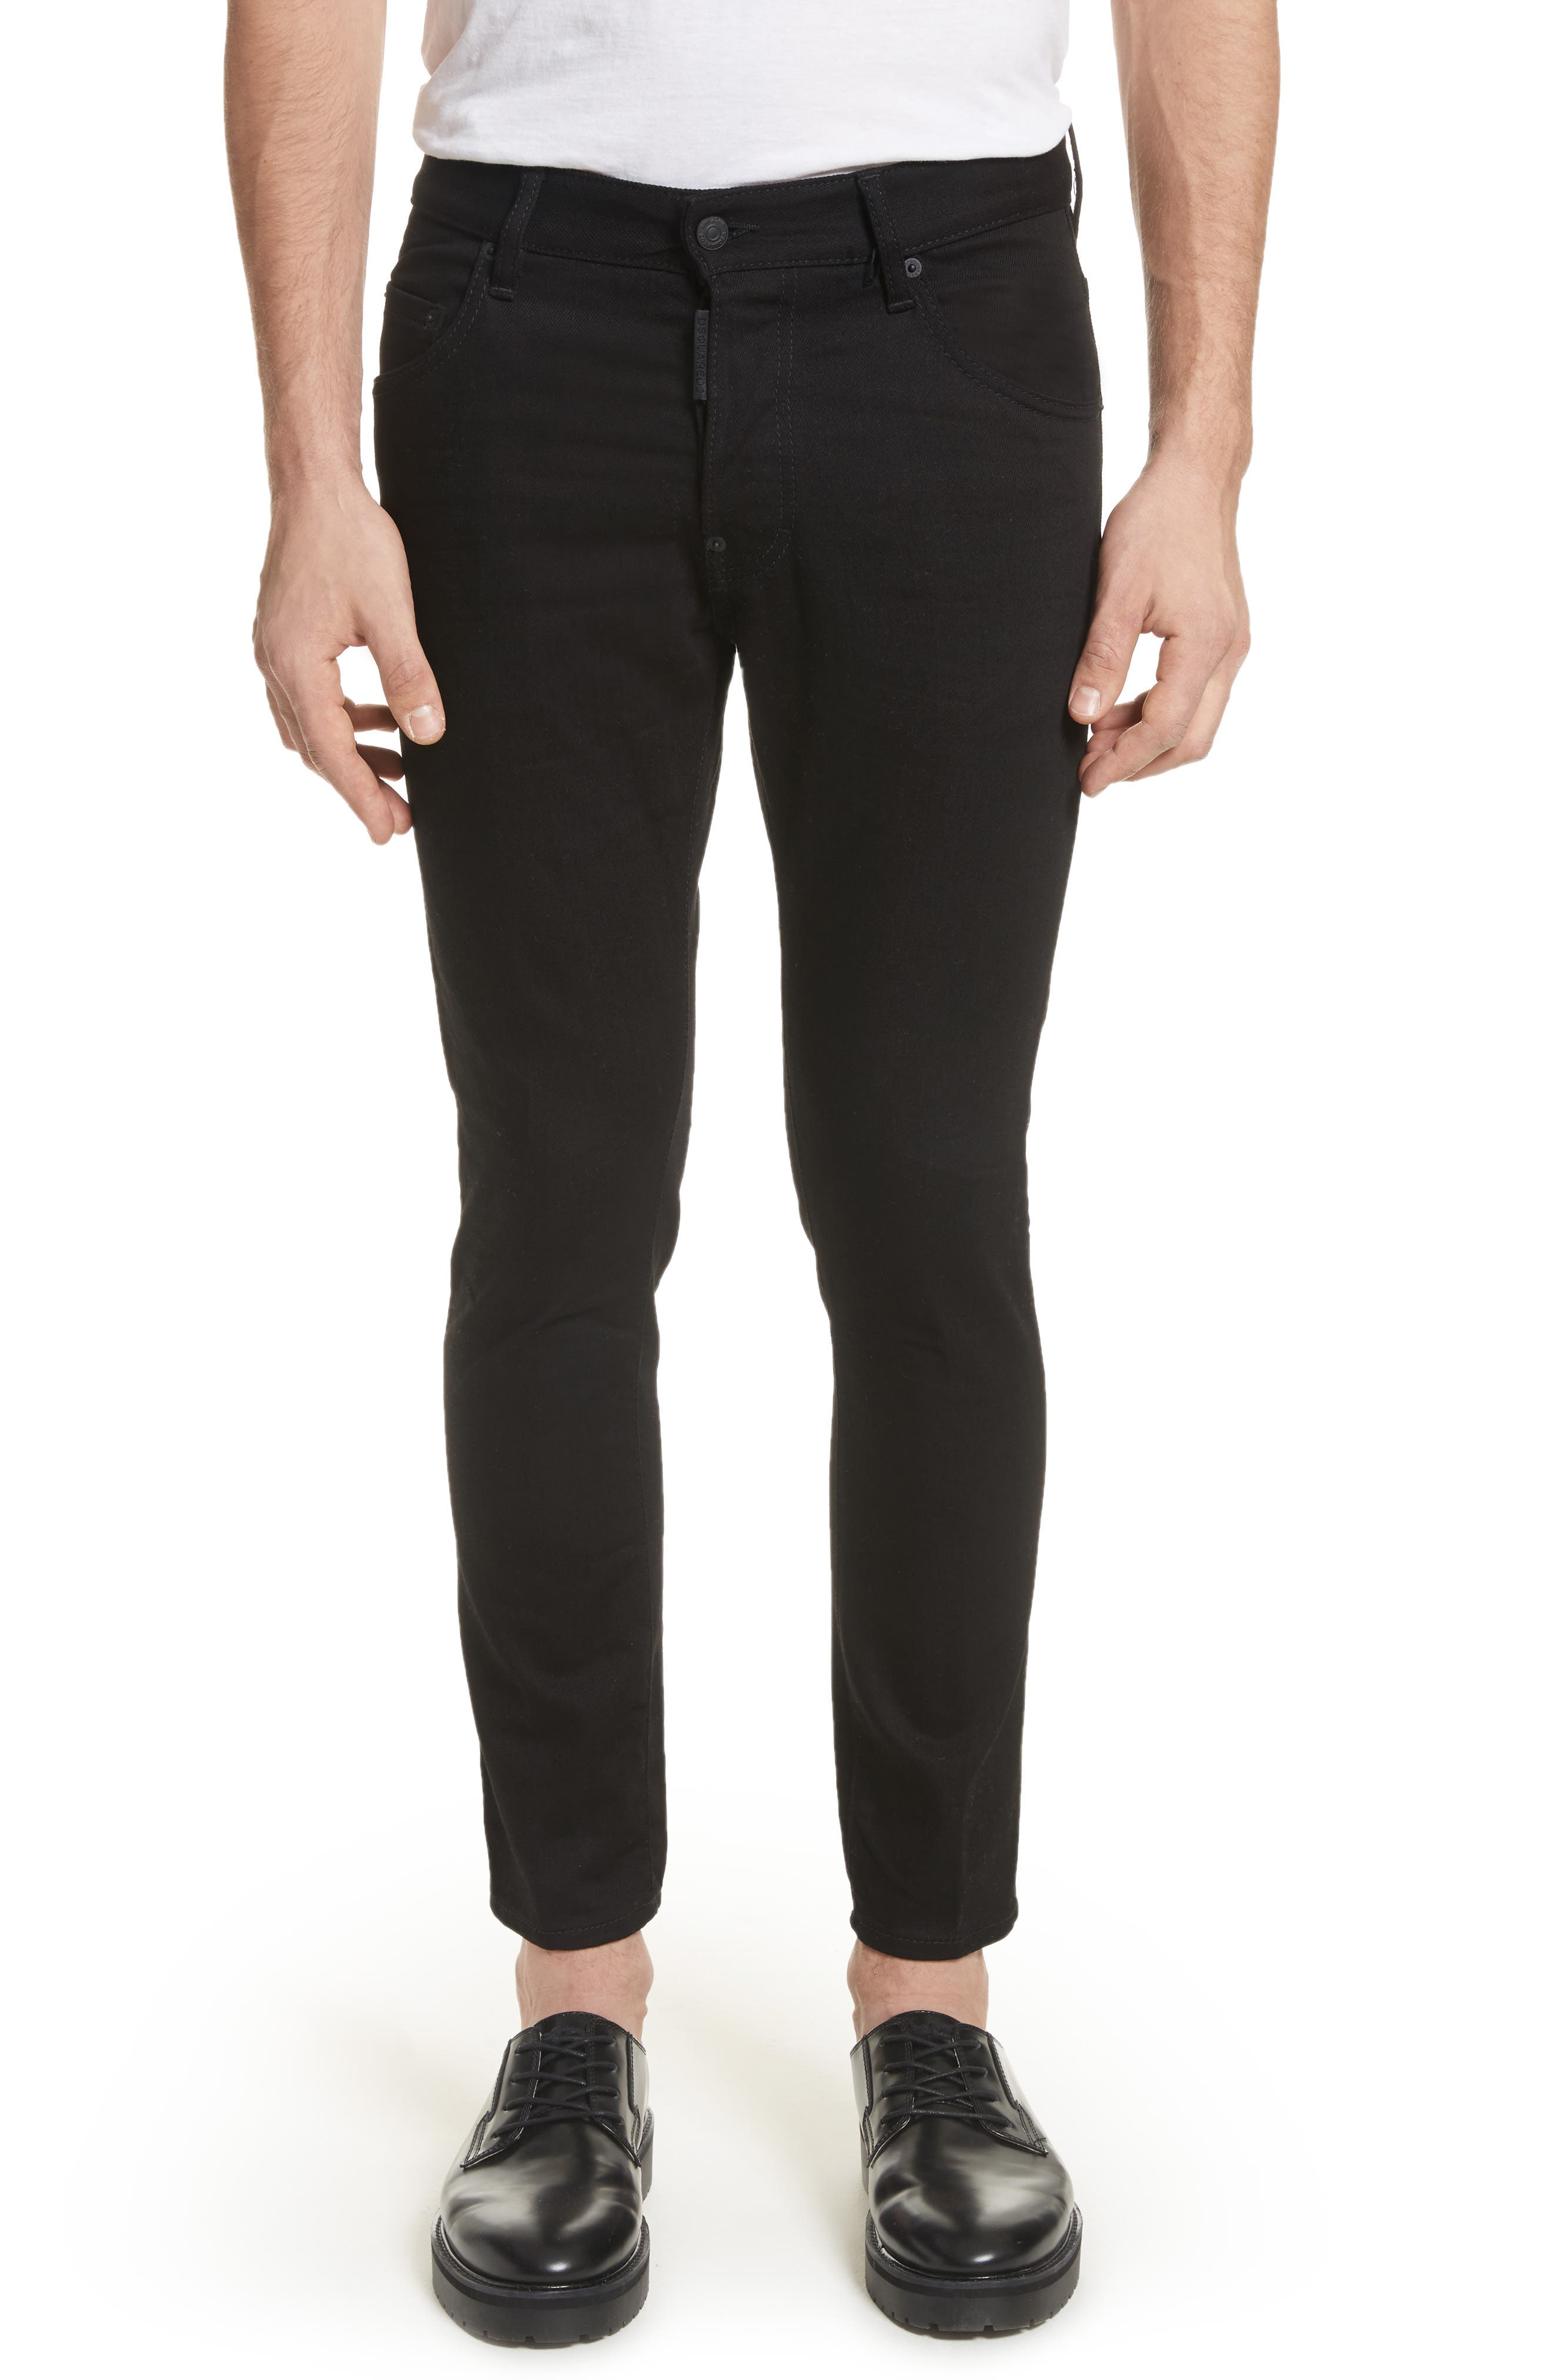 Black Bull Skater Jeans,                         Main,                         color, Black